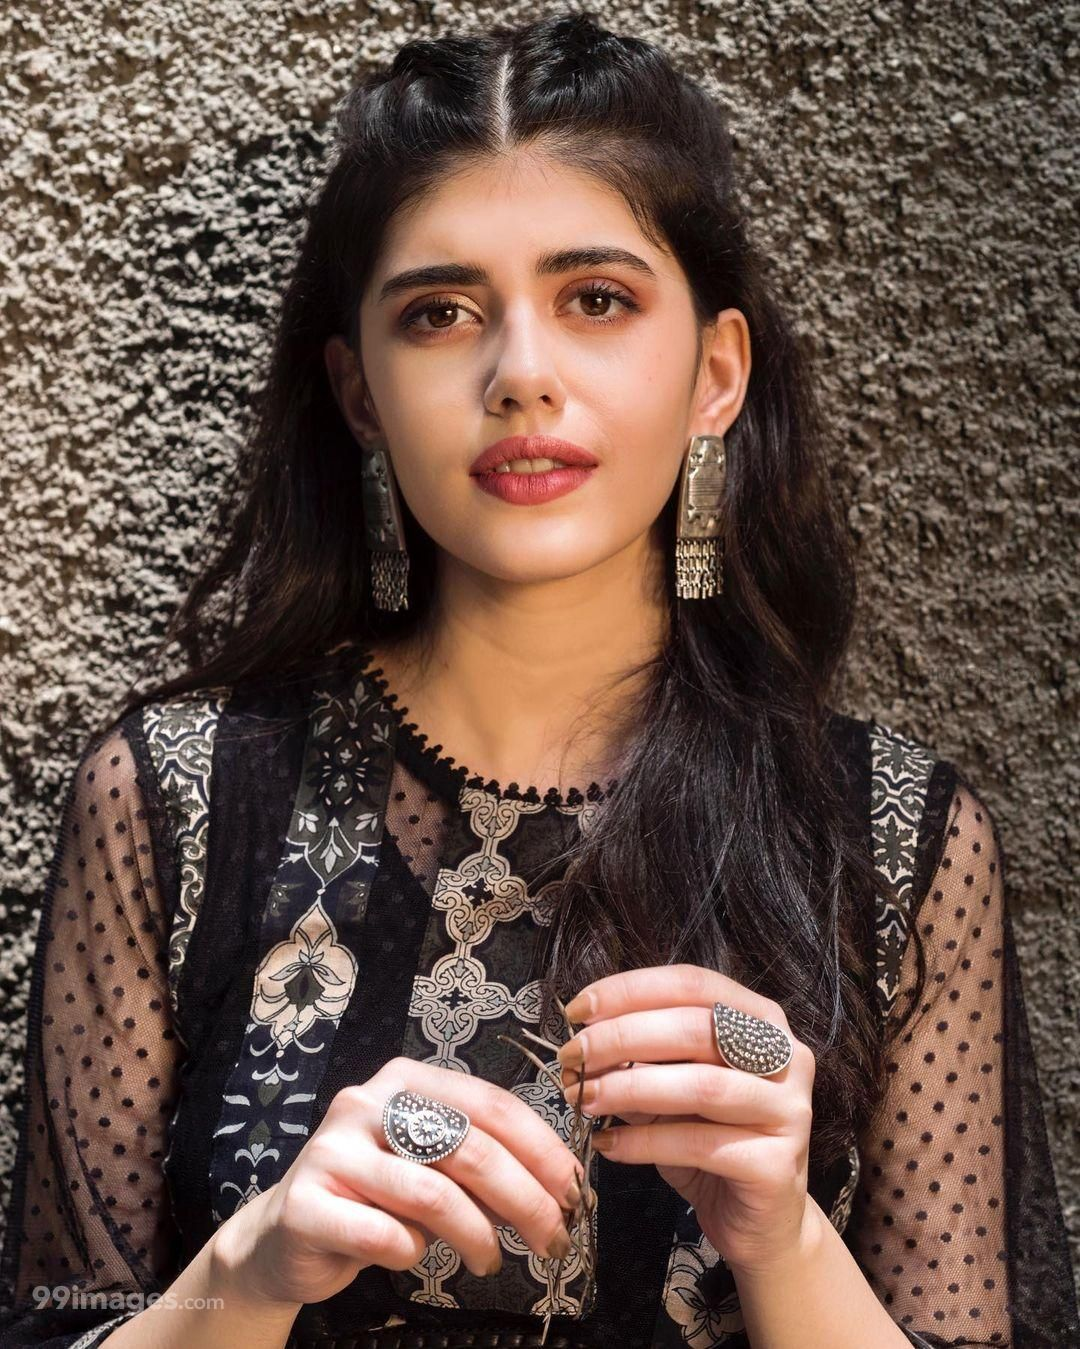 Sanjana Sanghi Hot HD Photos & Wallpapers for mobile, WhatsApp DP (1080p) (653669) - Sanjana Sanghi